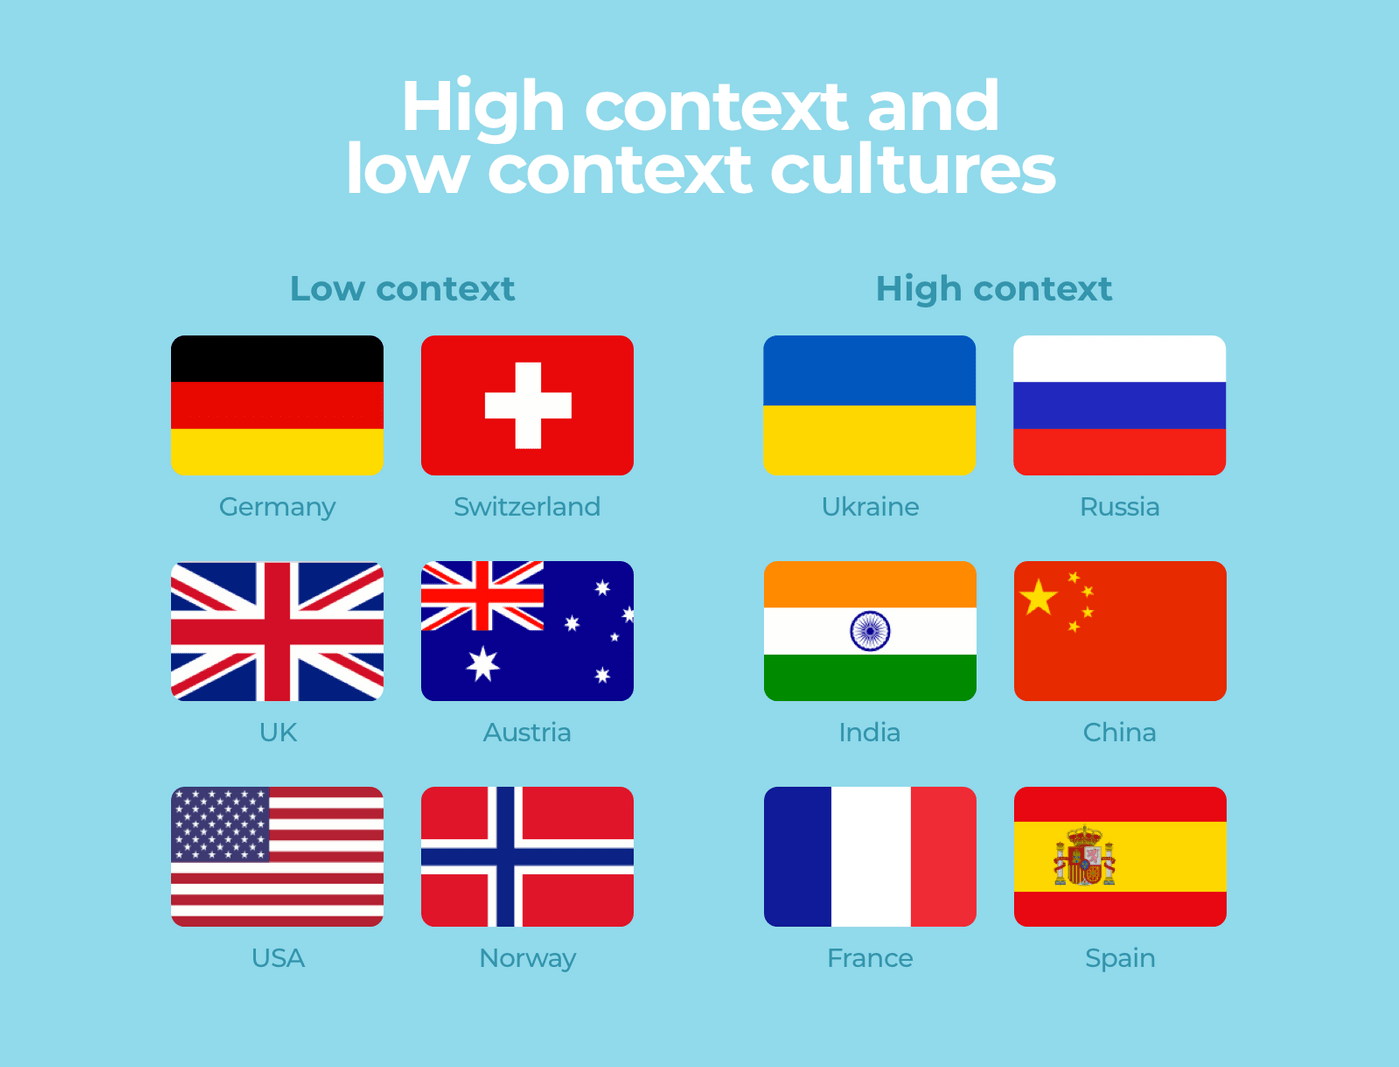 Countries and their culture types